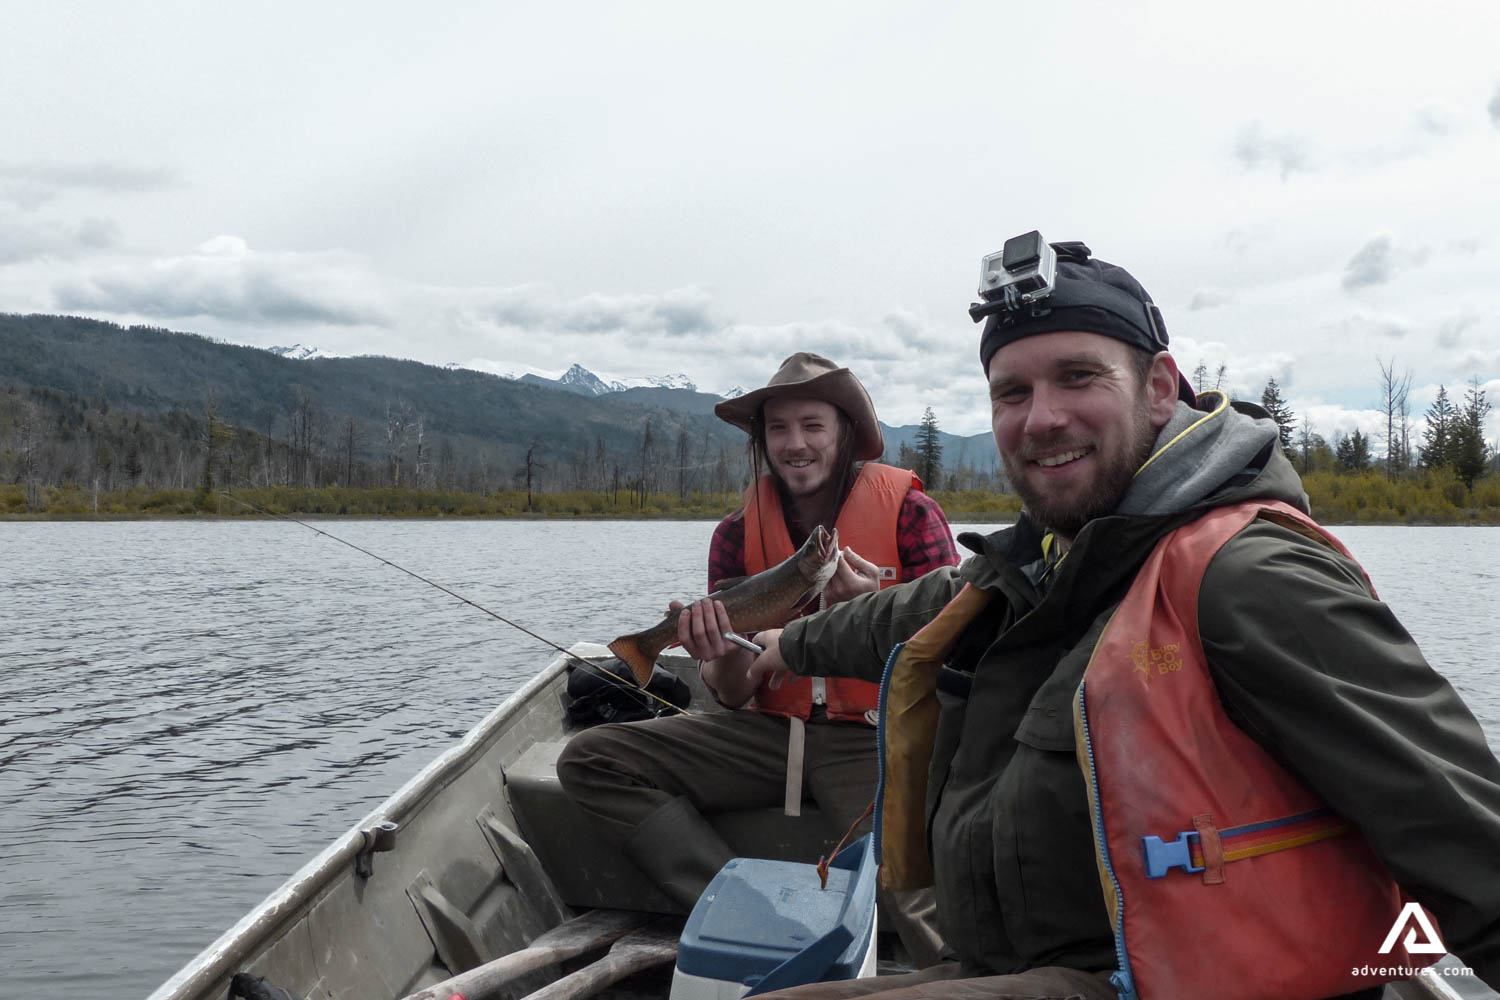 Men fishing in Canada from a boat